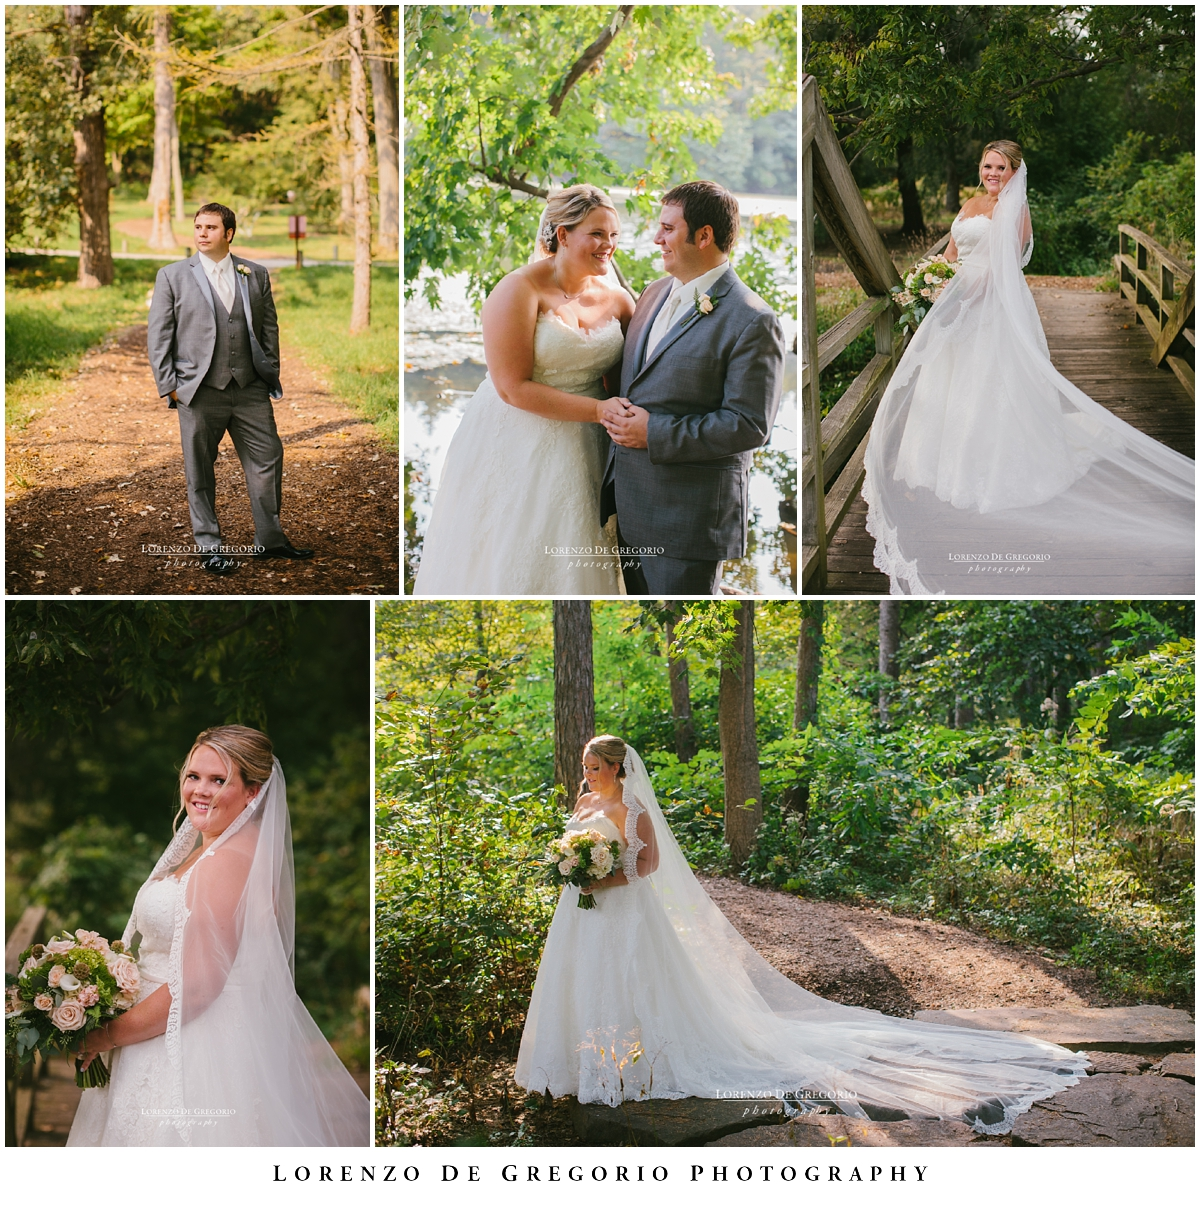 Morton Arboretum wedding, Chicago wedding photographer, Lorenzo De Gregorio Photography.